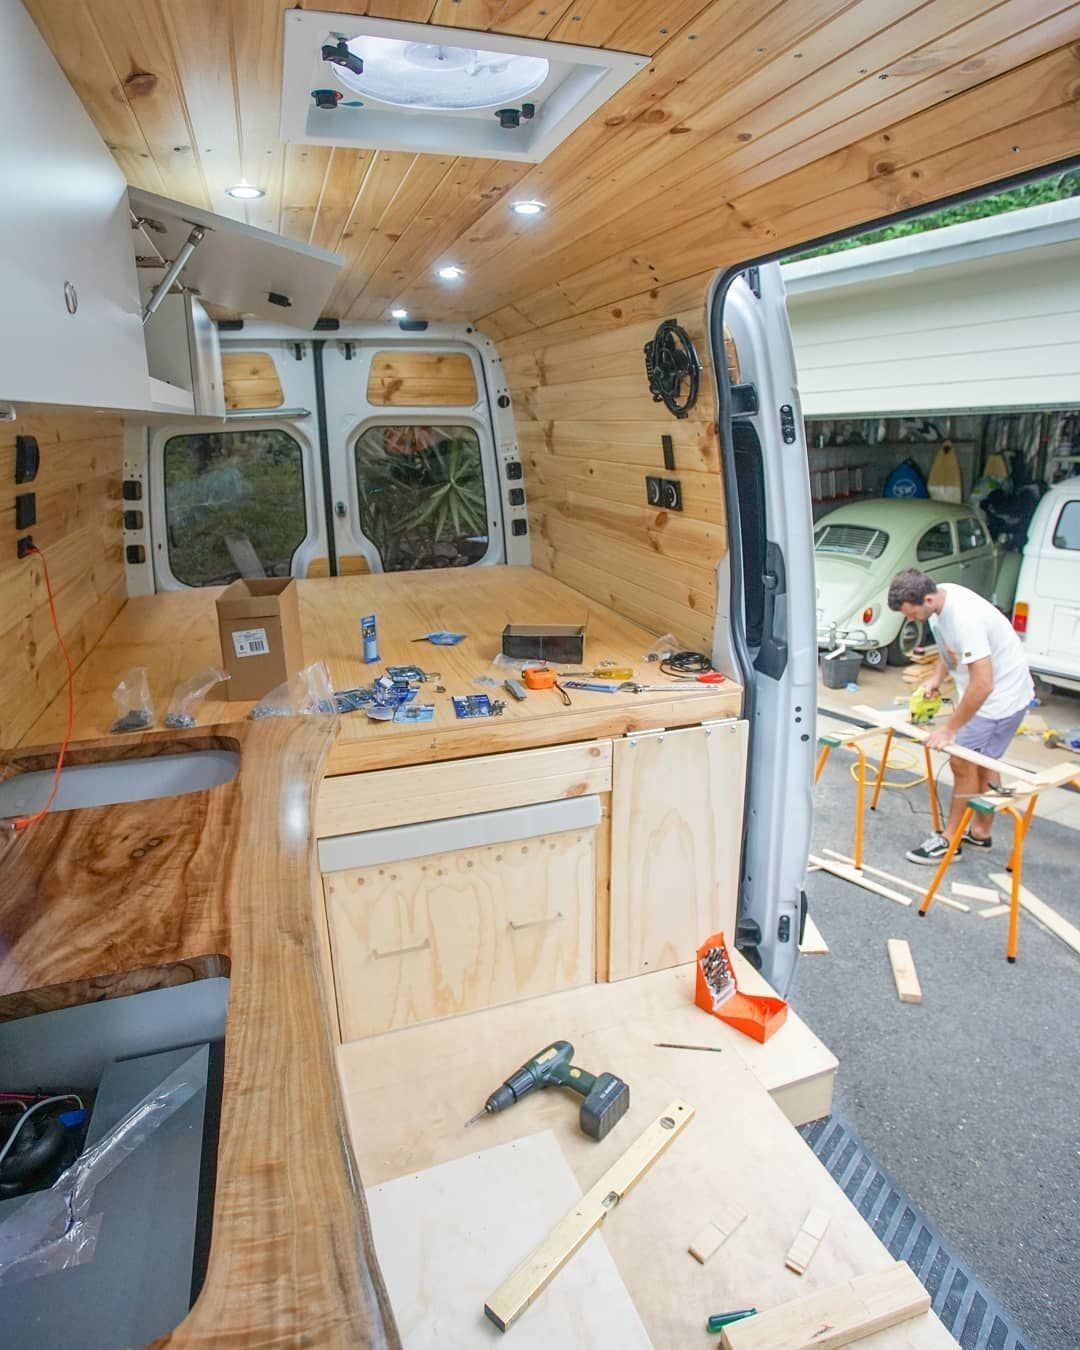 25 Awesome Camper Ideas Vanlife Interior Design Https Www Vanchitecture Com 2018 07 07 25 Aweso Wohnmobil Umbau Wohnmobilumbau Kastenwagen In Wohnmobil Umbau